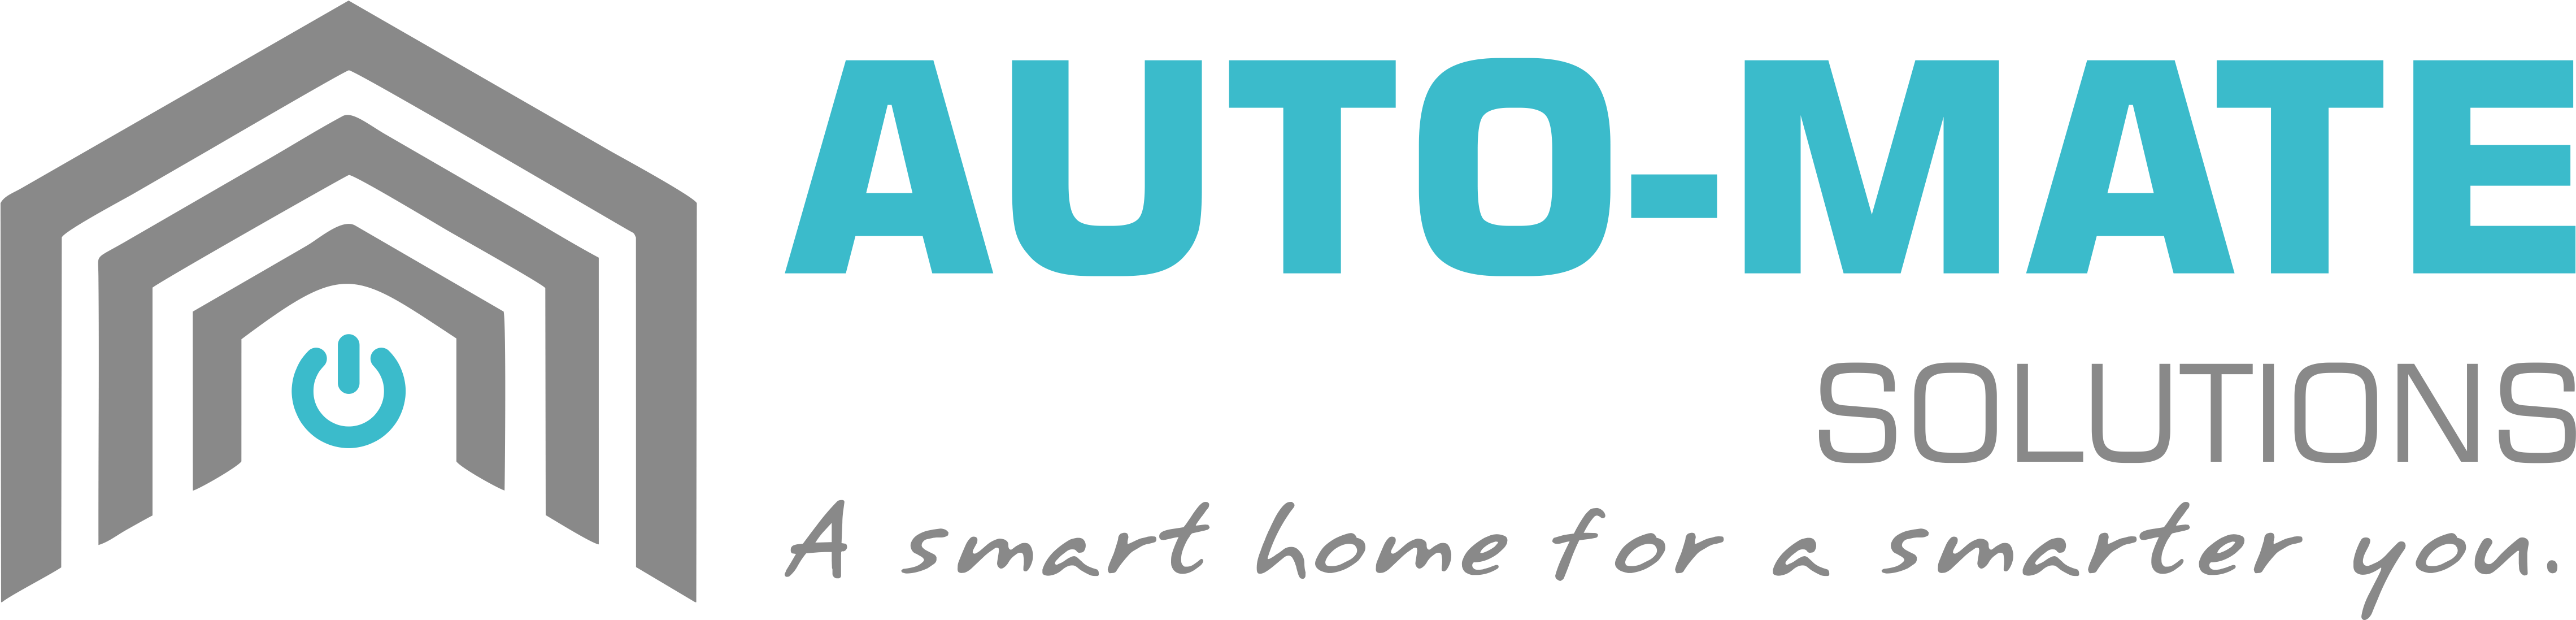 Auto-mate Solutions